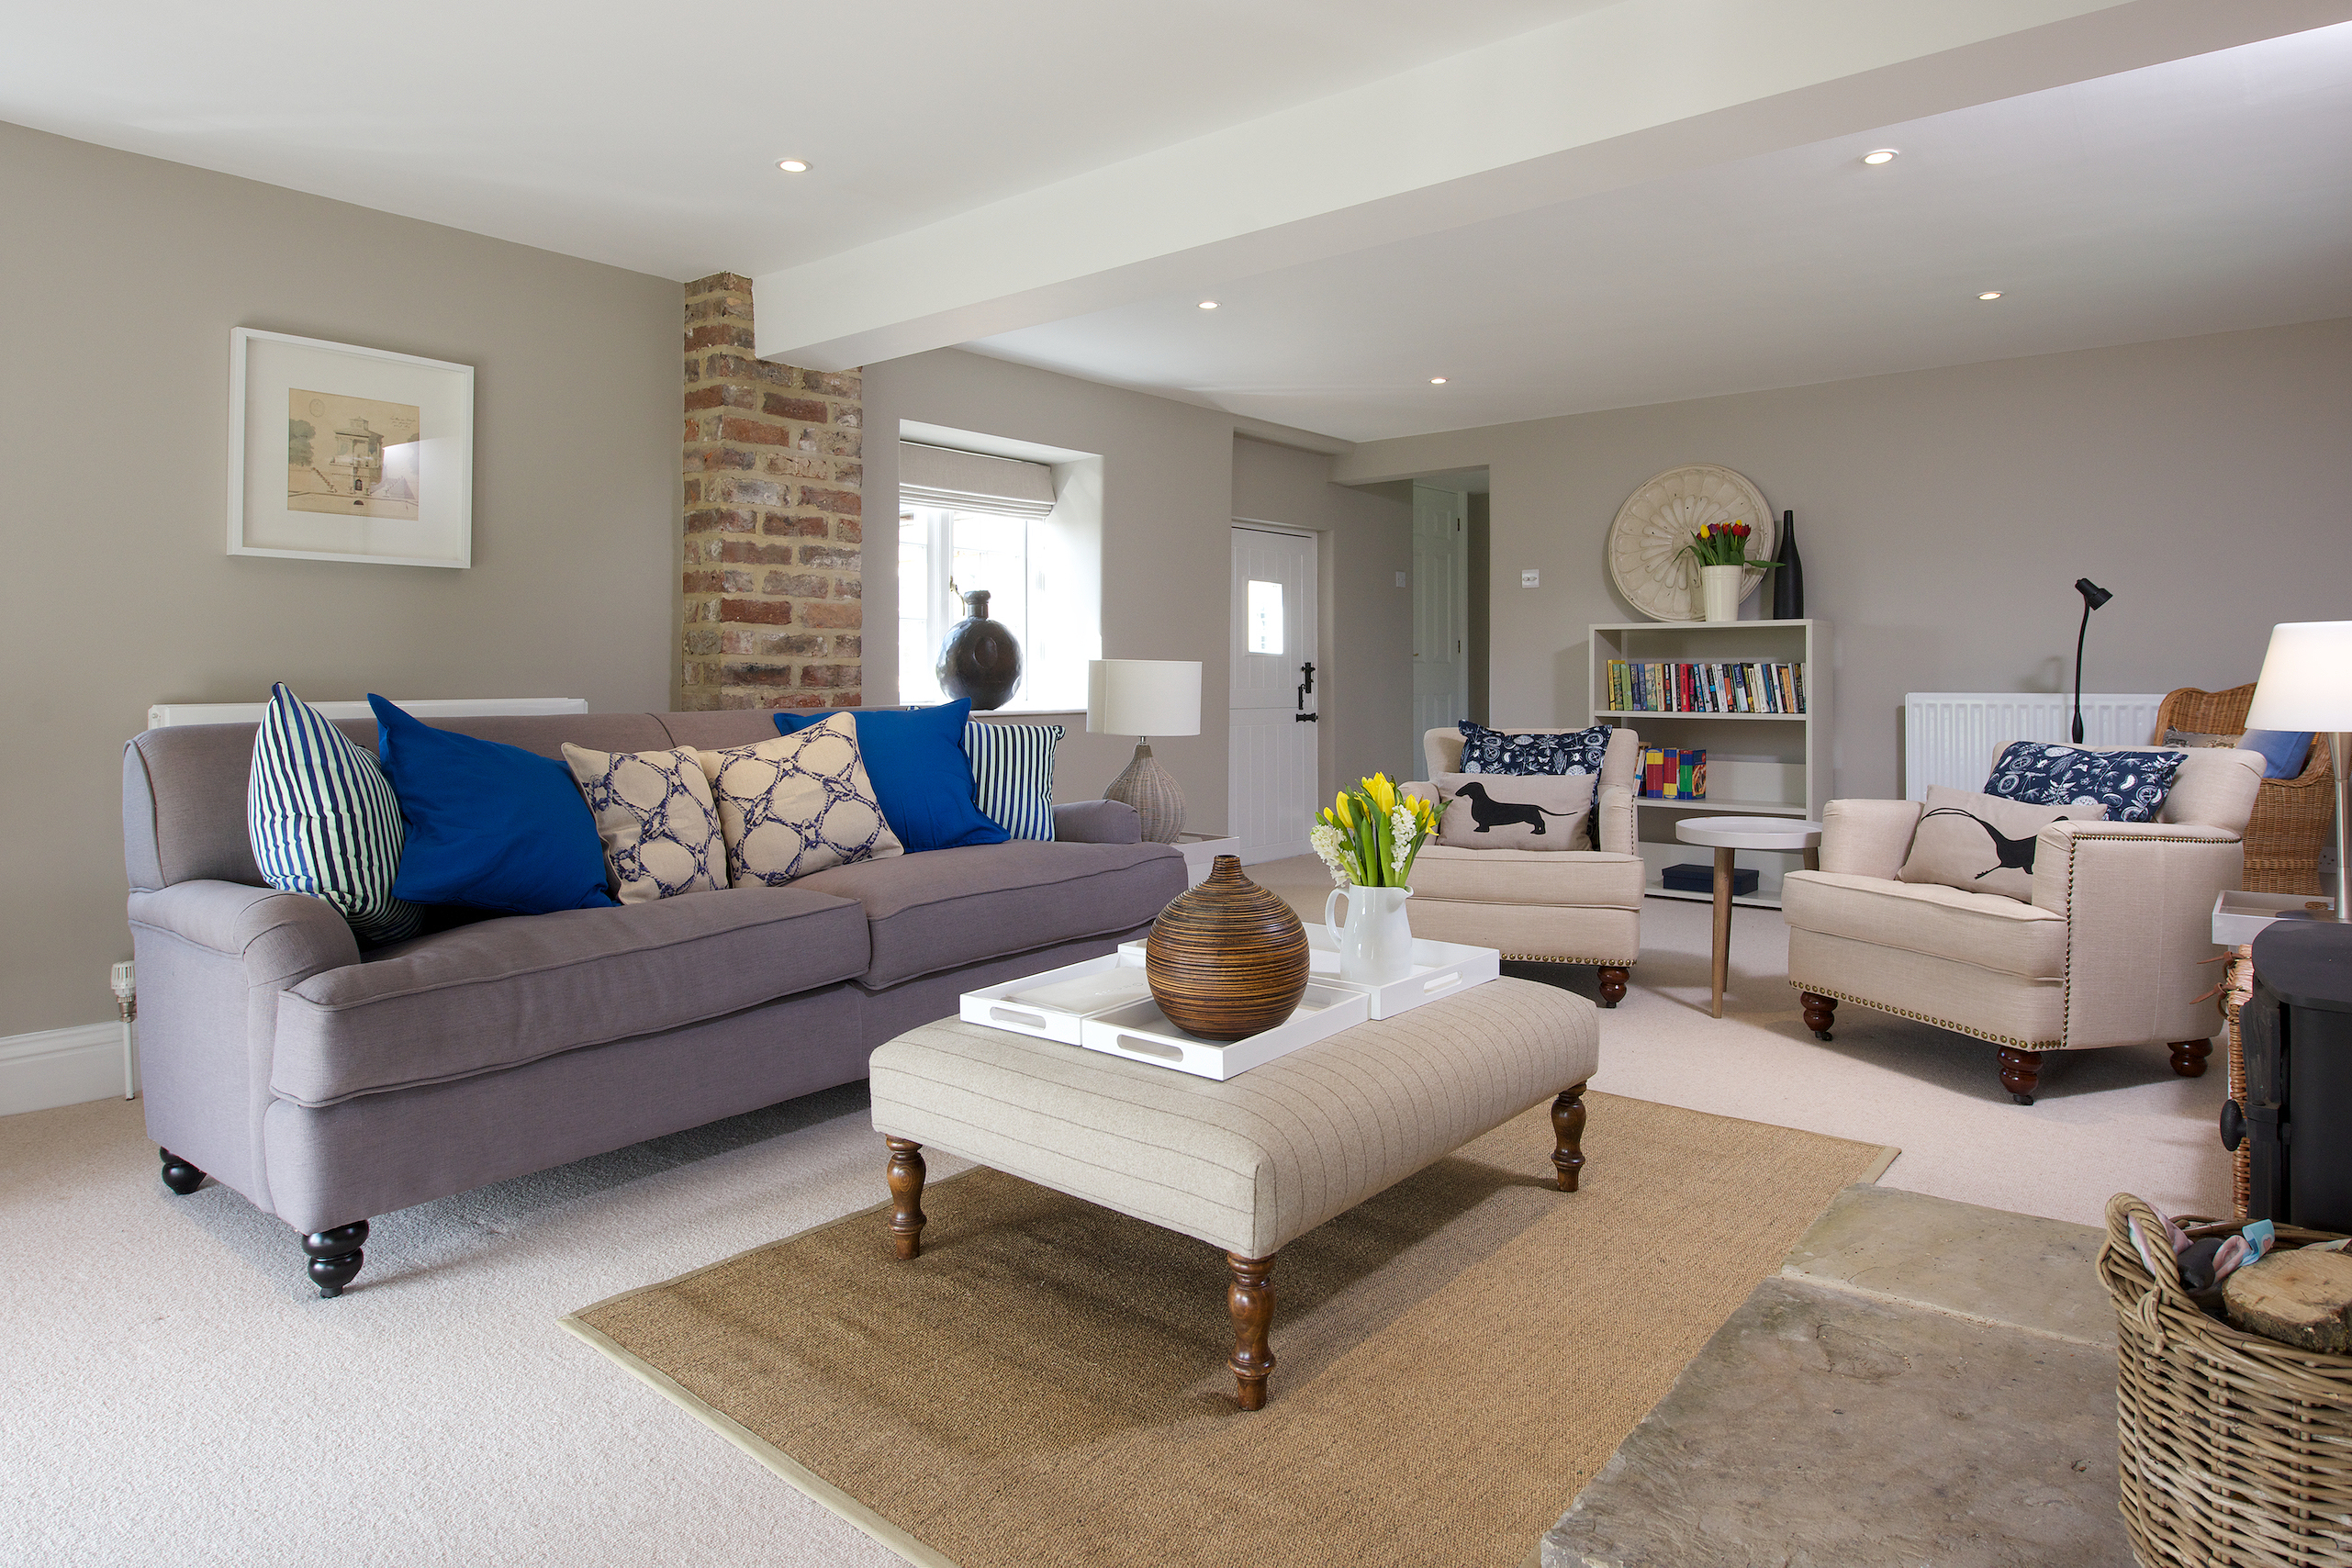 North yorkshire cottage o commercial interior design by for Interior decorators yorkshire